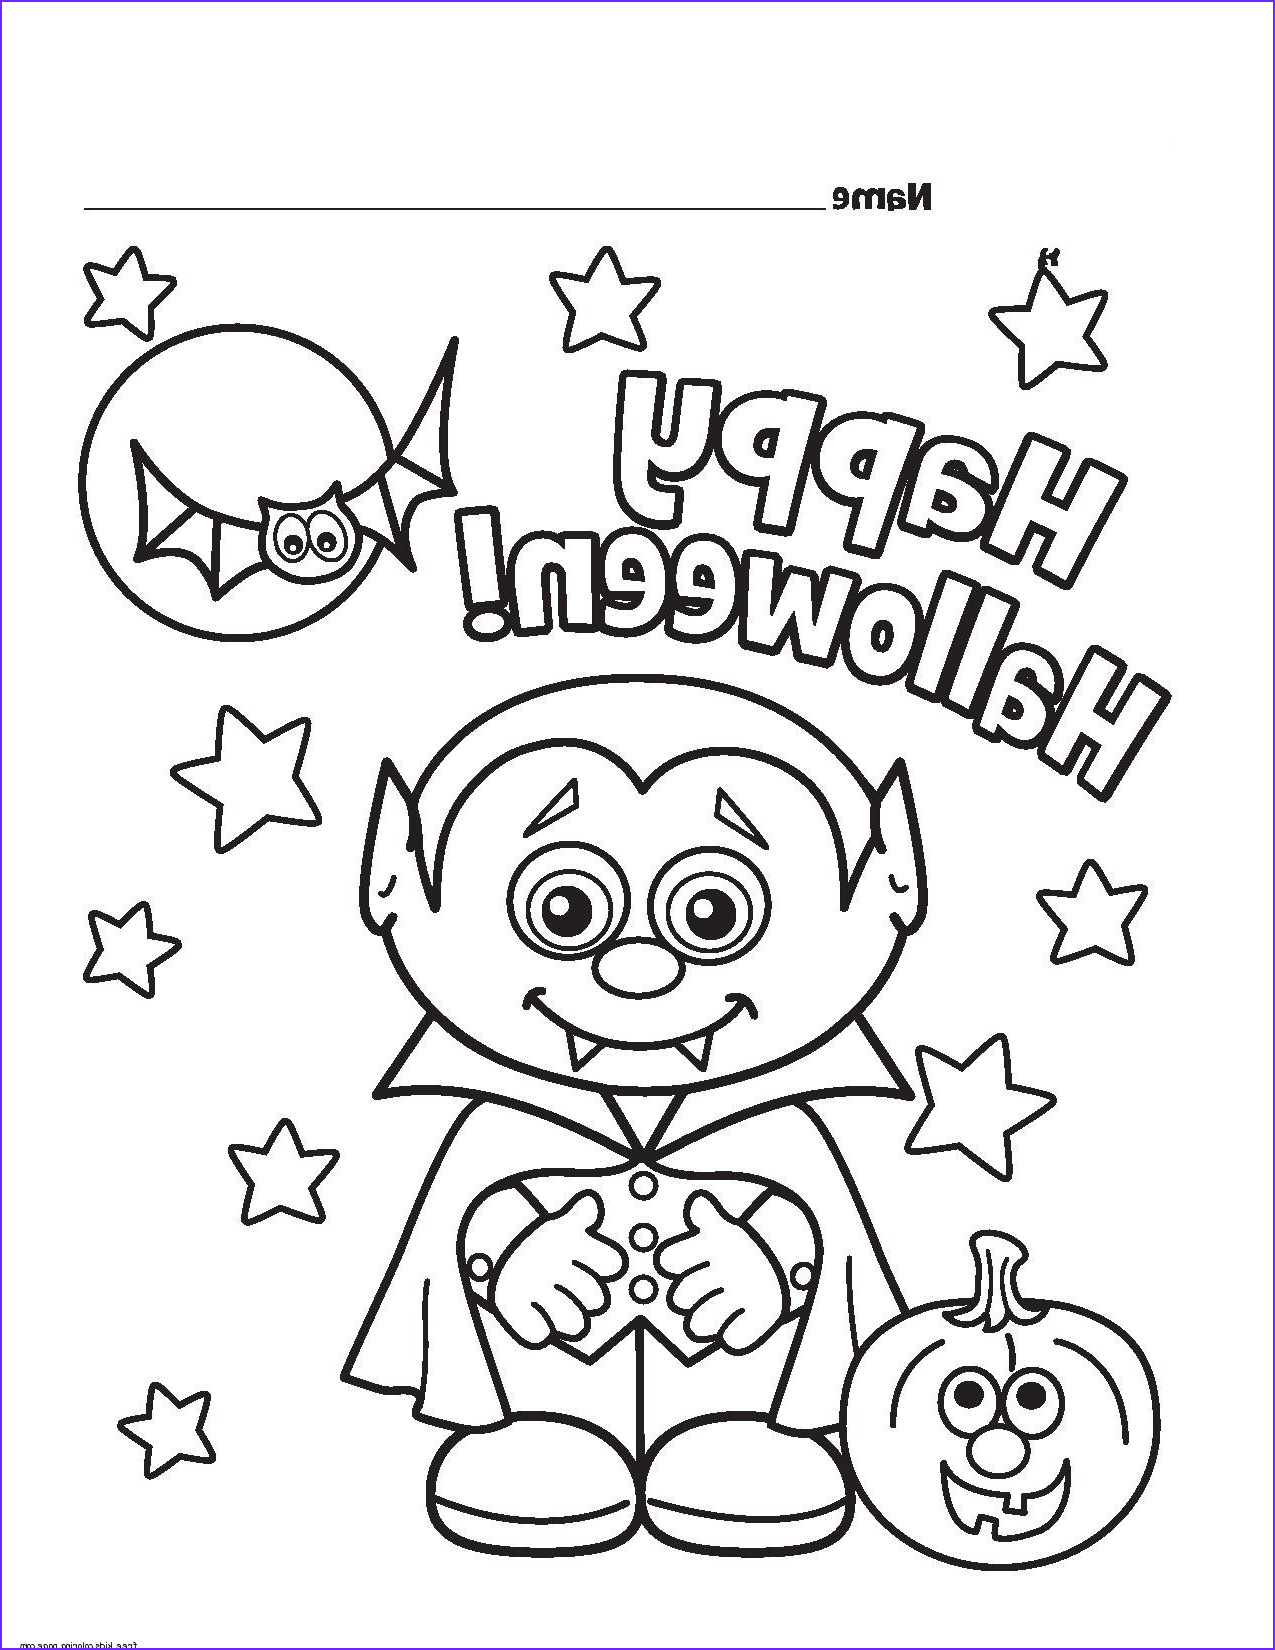 Free Halloween Coloring Pages Awesome Photos Halloween Little Vampire Printable Coloring Pages for